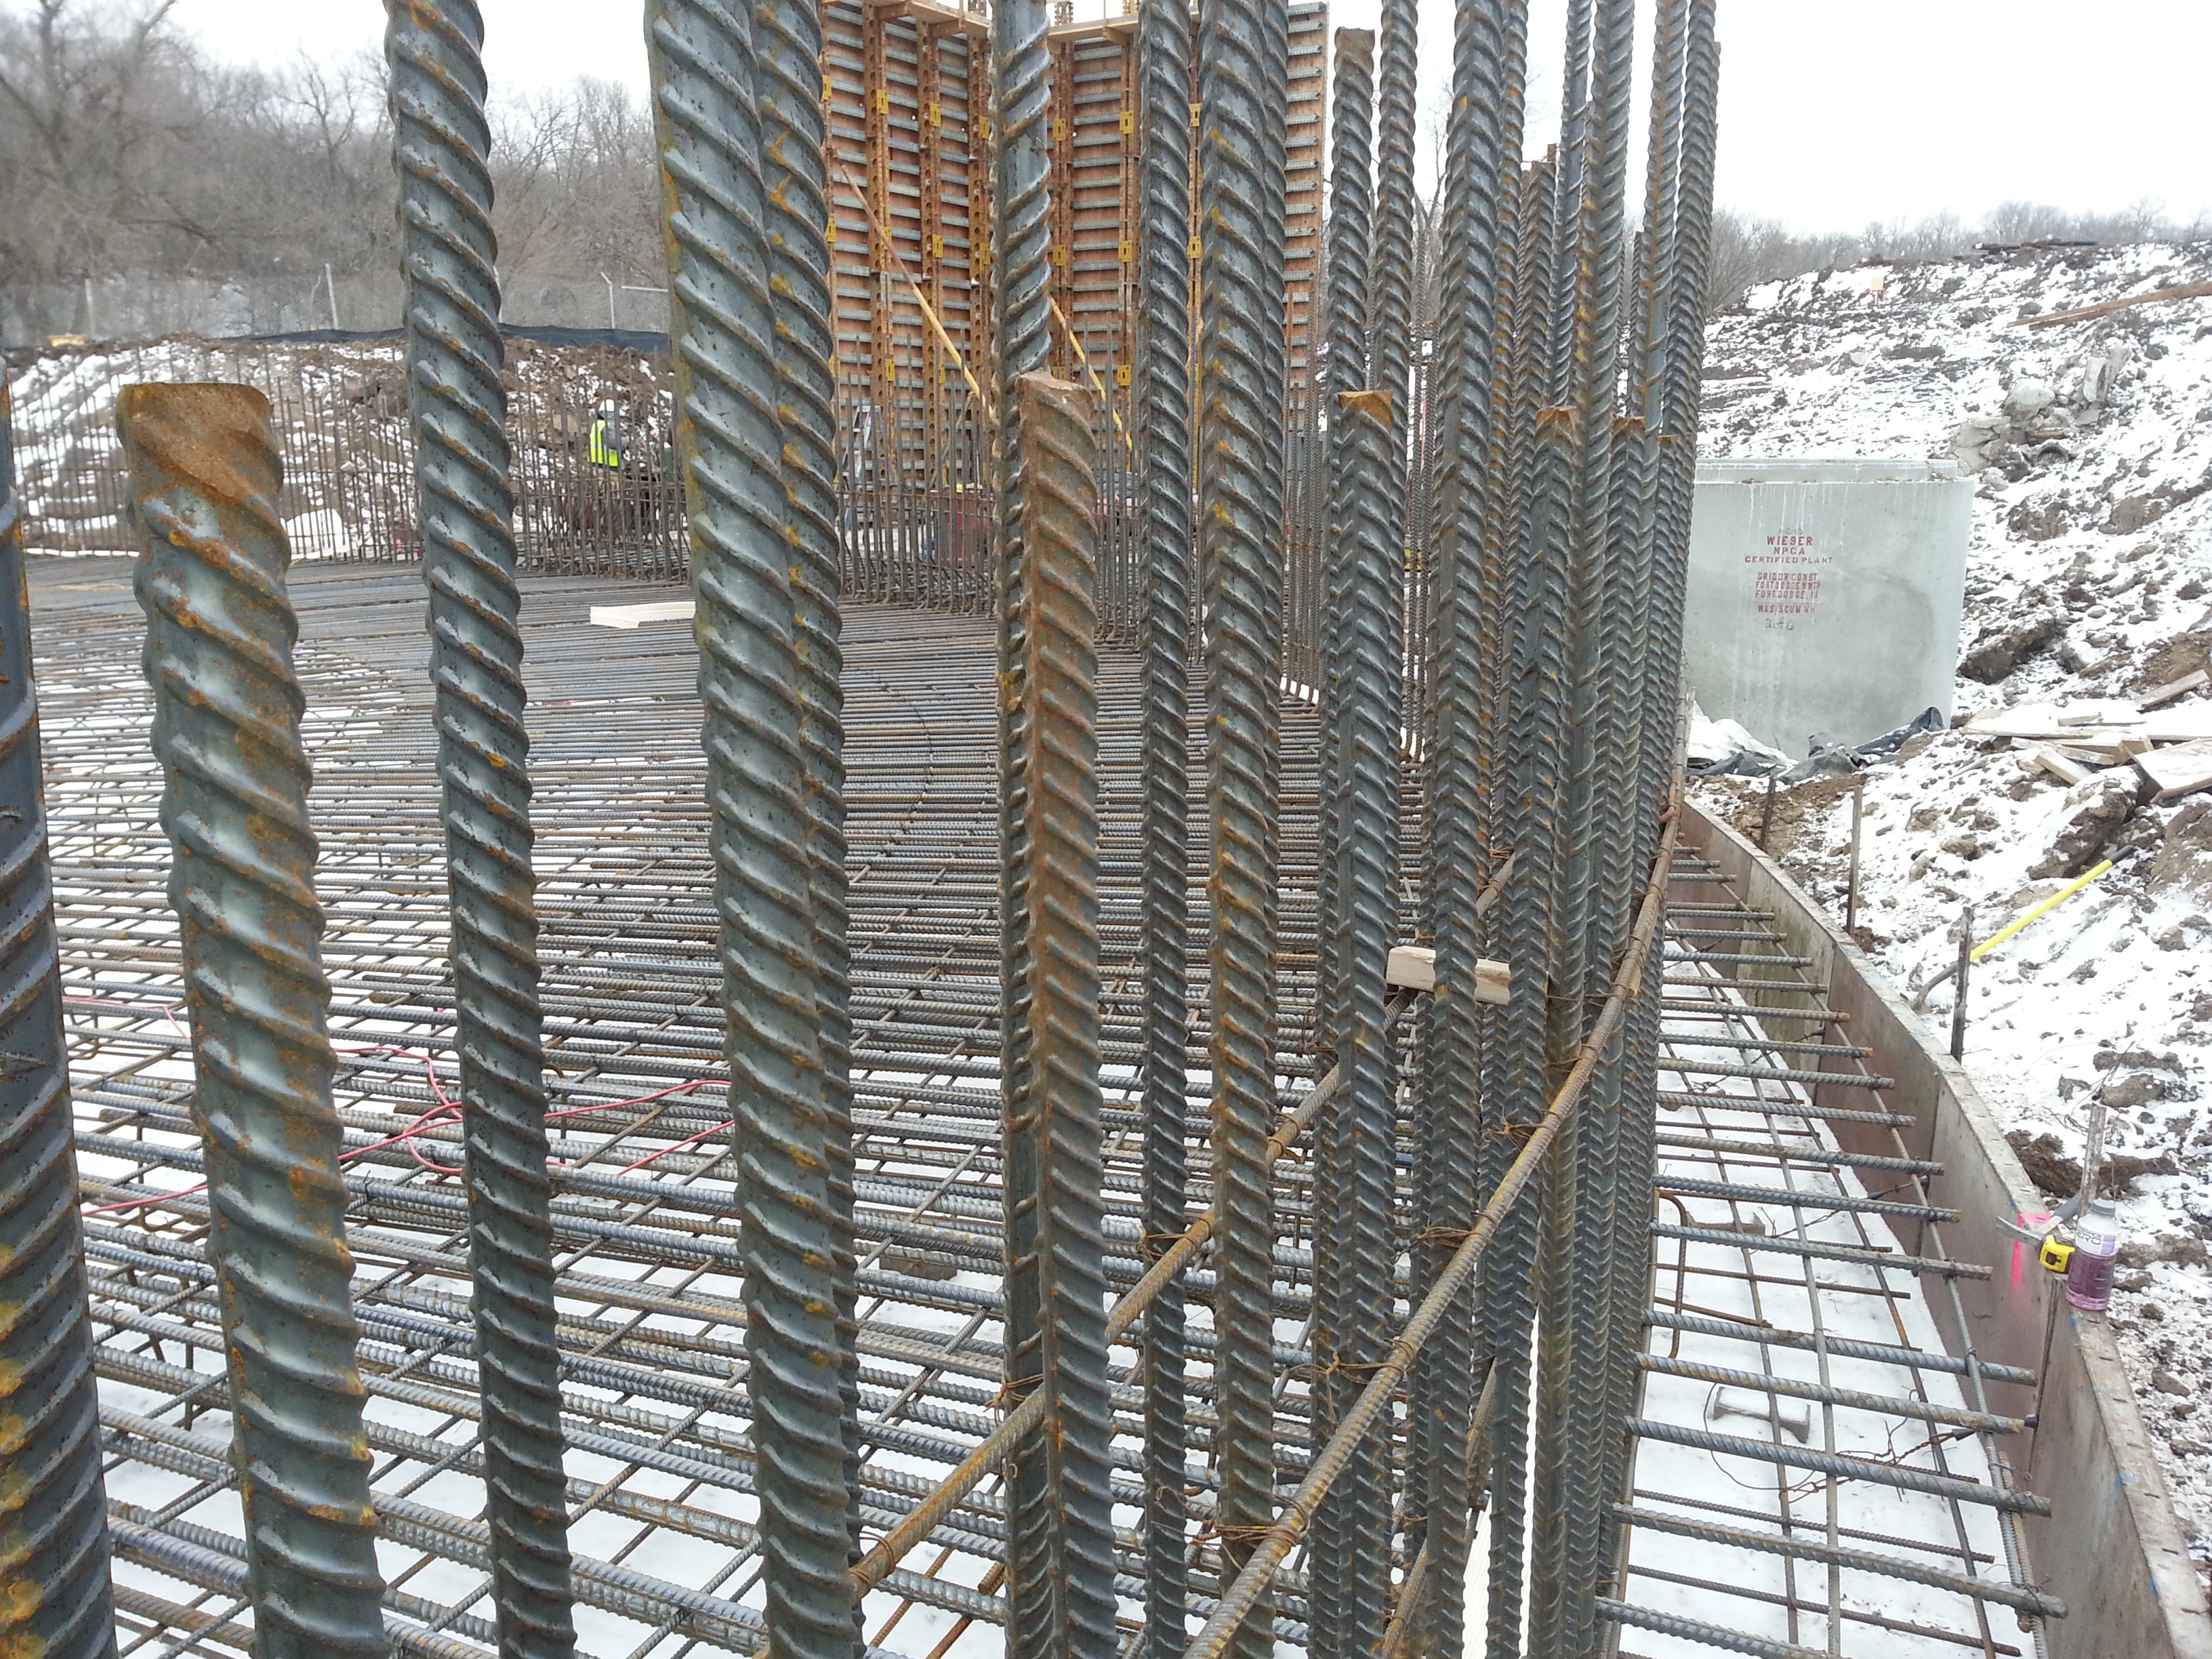 Wastewater Rebar Placement - Tanley Reinforcing, Inc.